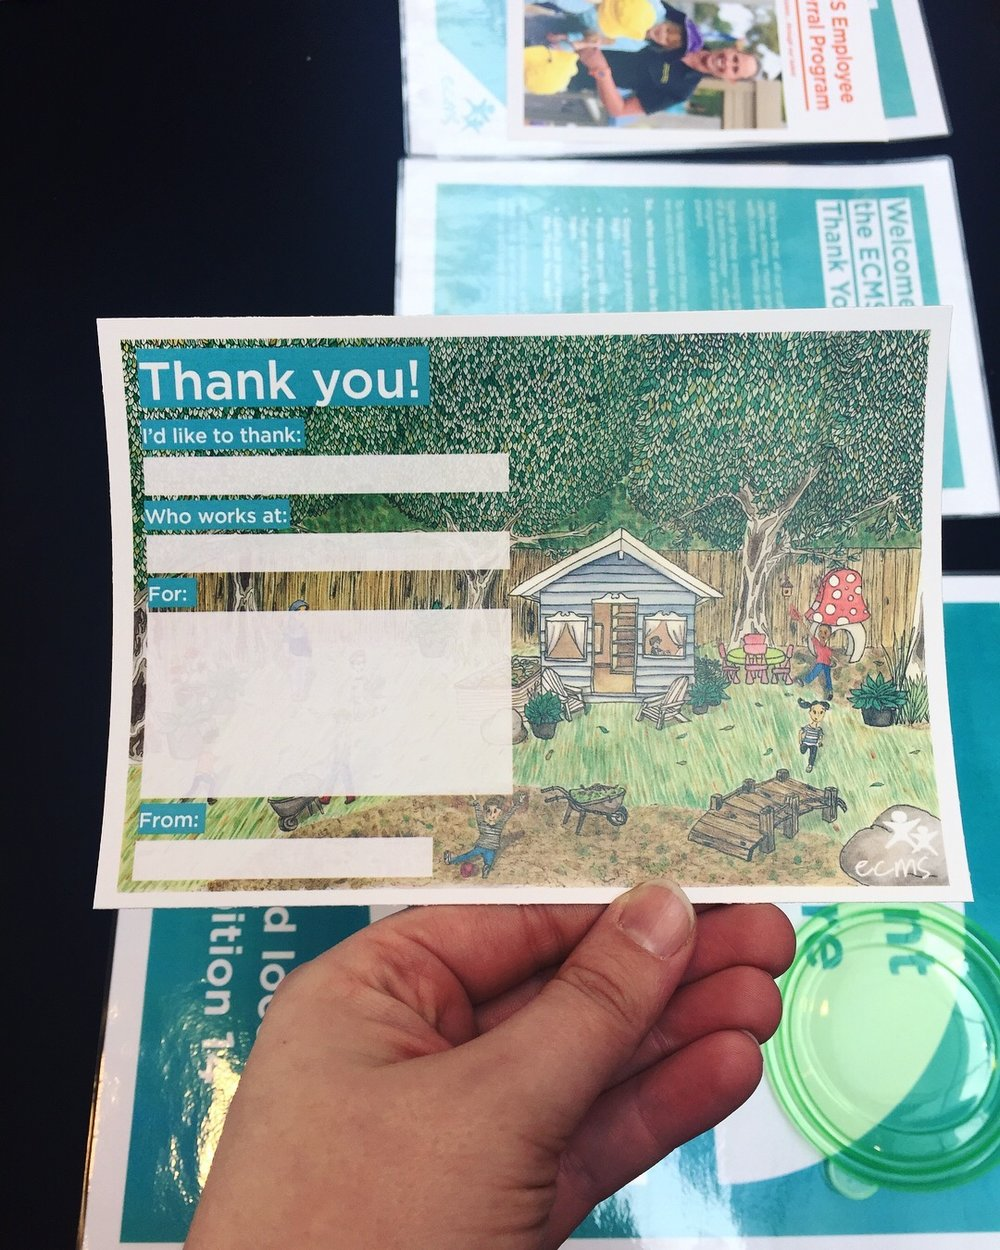 ECMS Thank You Cards for the 2017 Beyond Tomorrow Conference